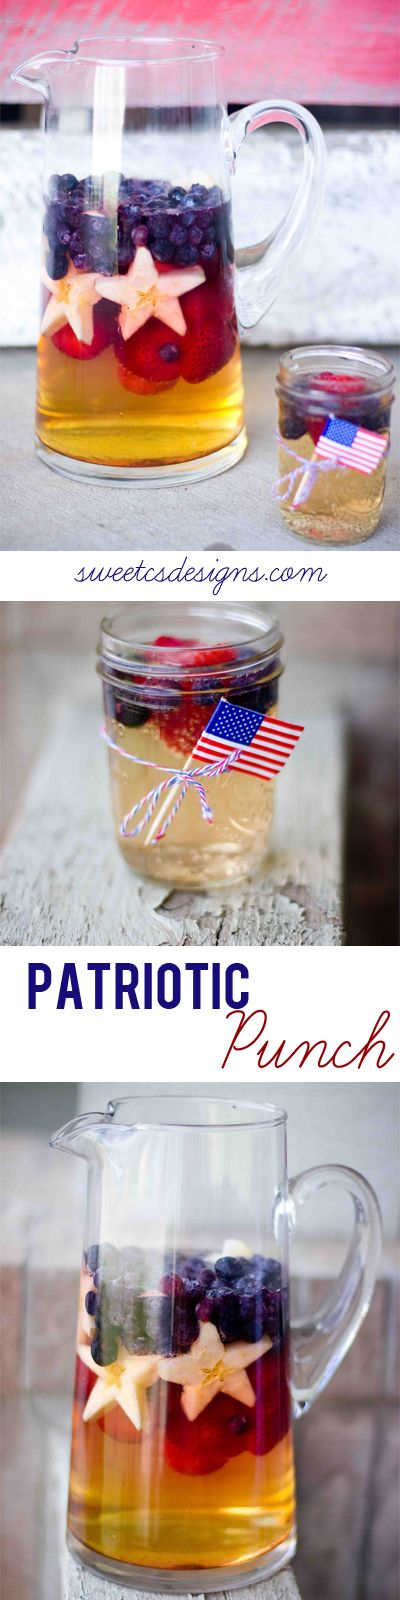 Patriotic punch- I am SO doing this for 4th of July! Super easy to make a delicious and impressive drink- and you can make it an adult version, too!